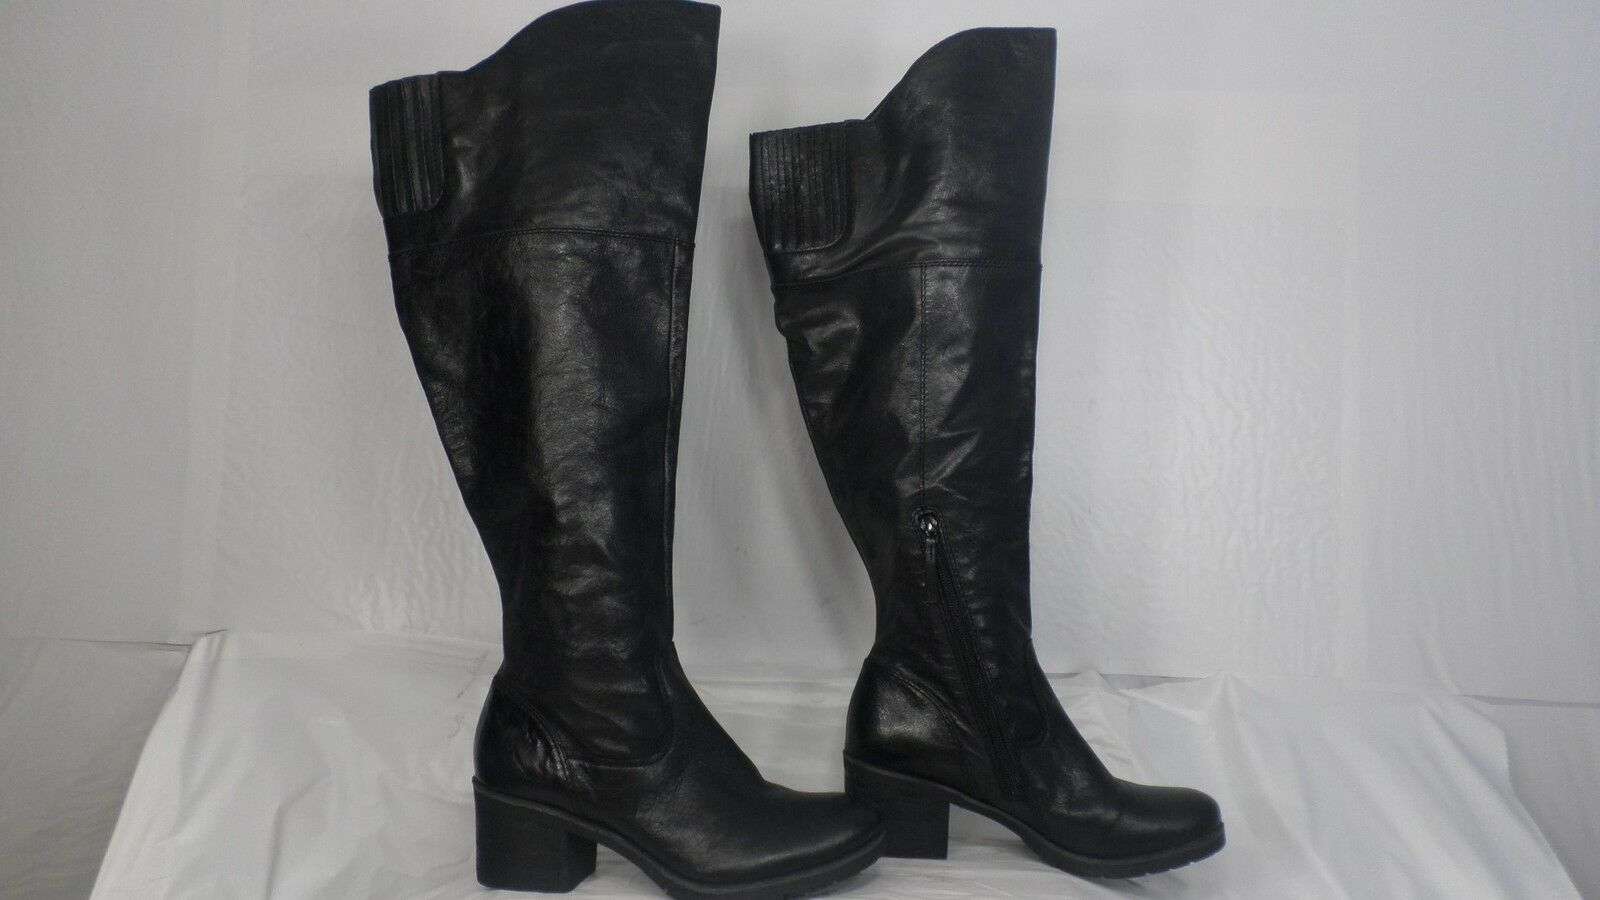 Naya 'North' Black Leather Wide Shaft Over-the-Knee Pull-On Boot Women Size 6.5